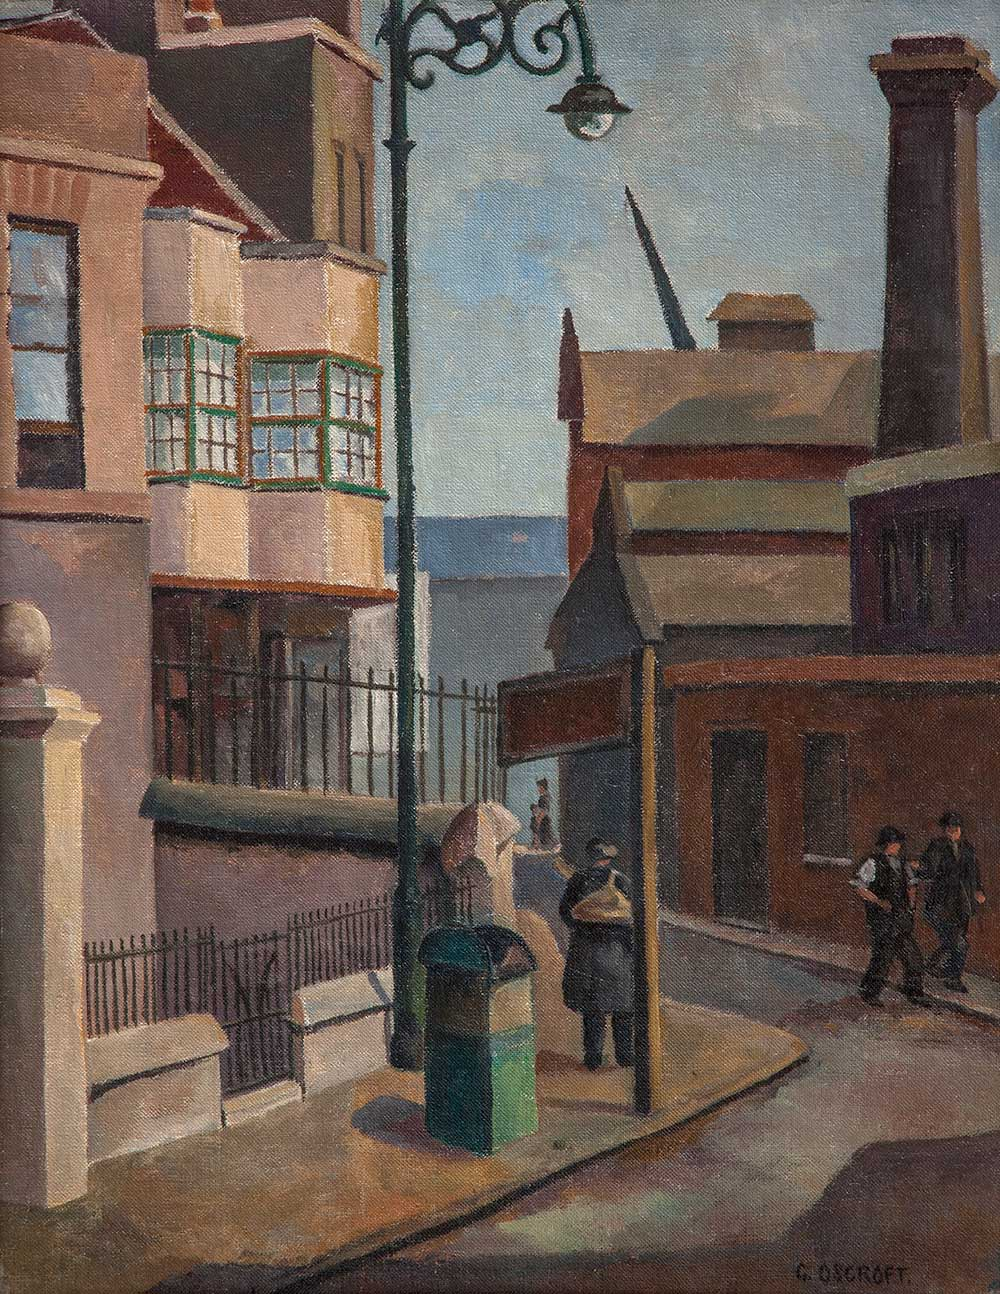 Painting of old houses in Bow with a